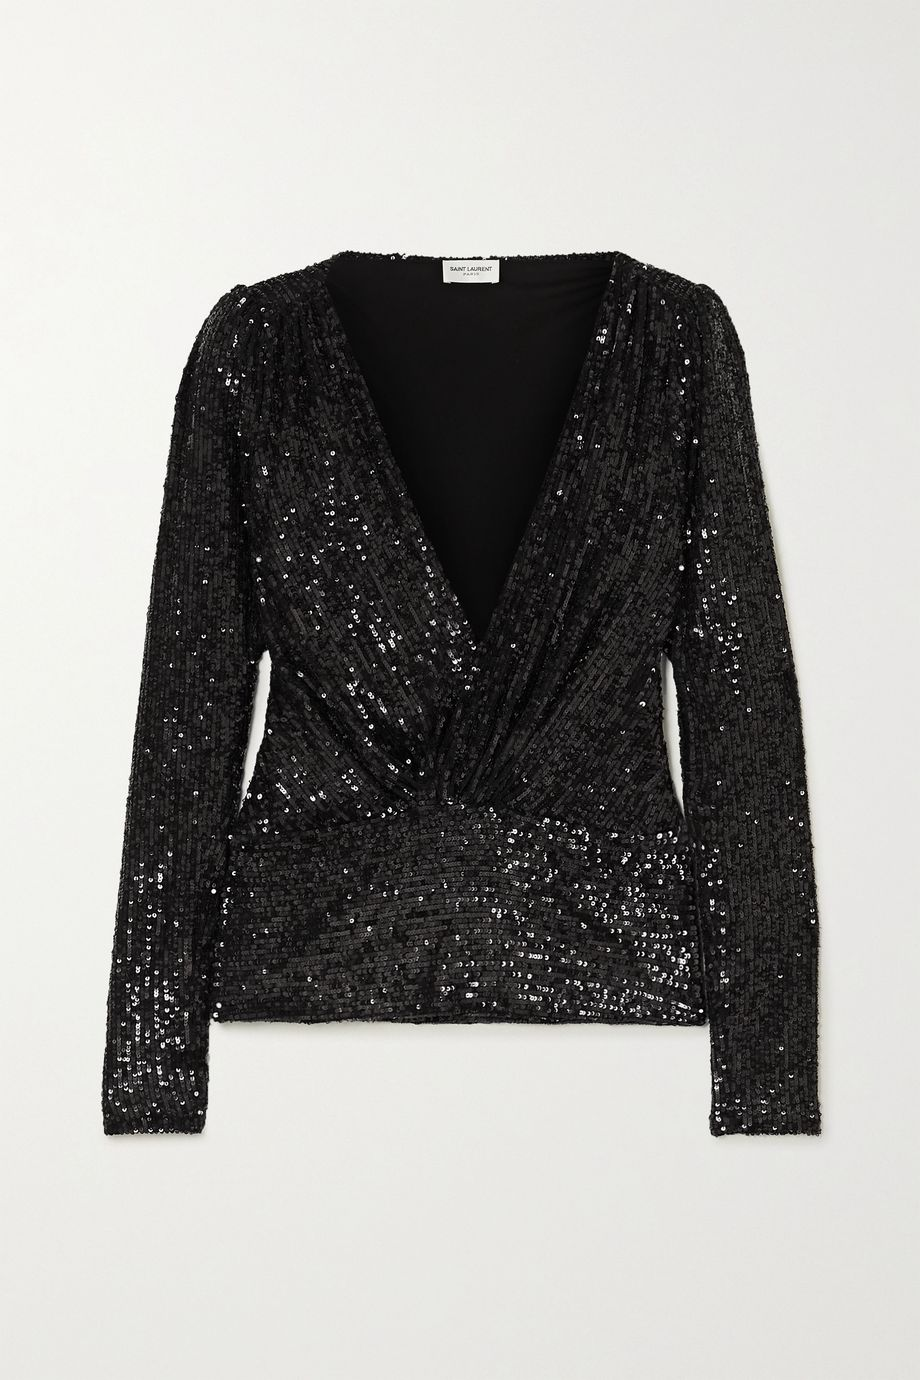 SAINT LAURENT Sequined jersey blouse